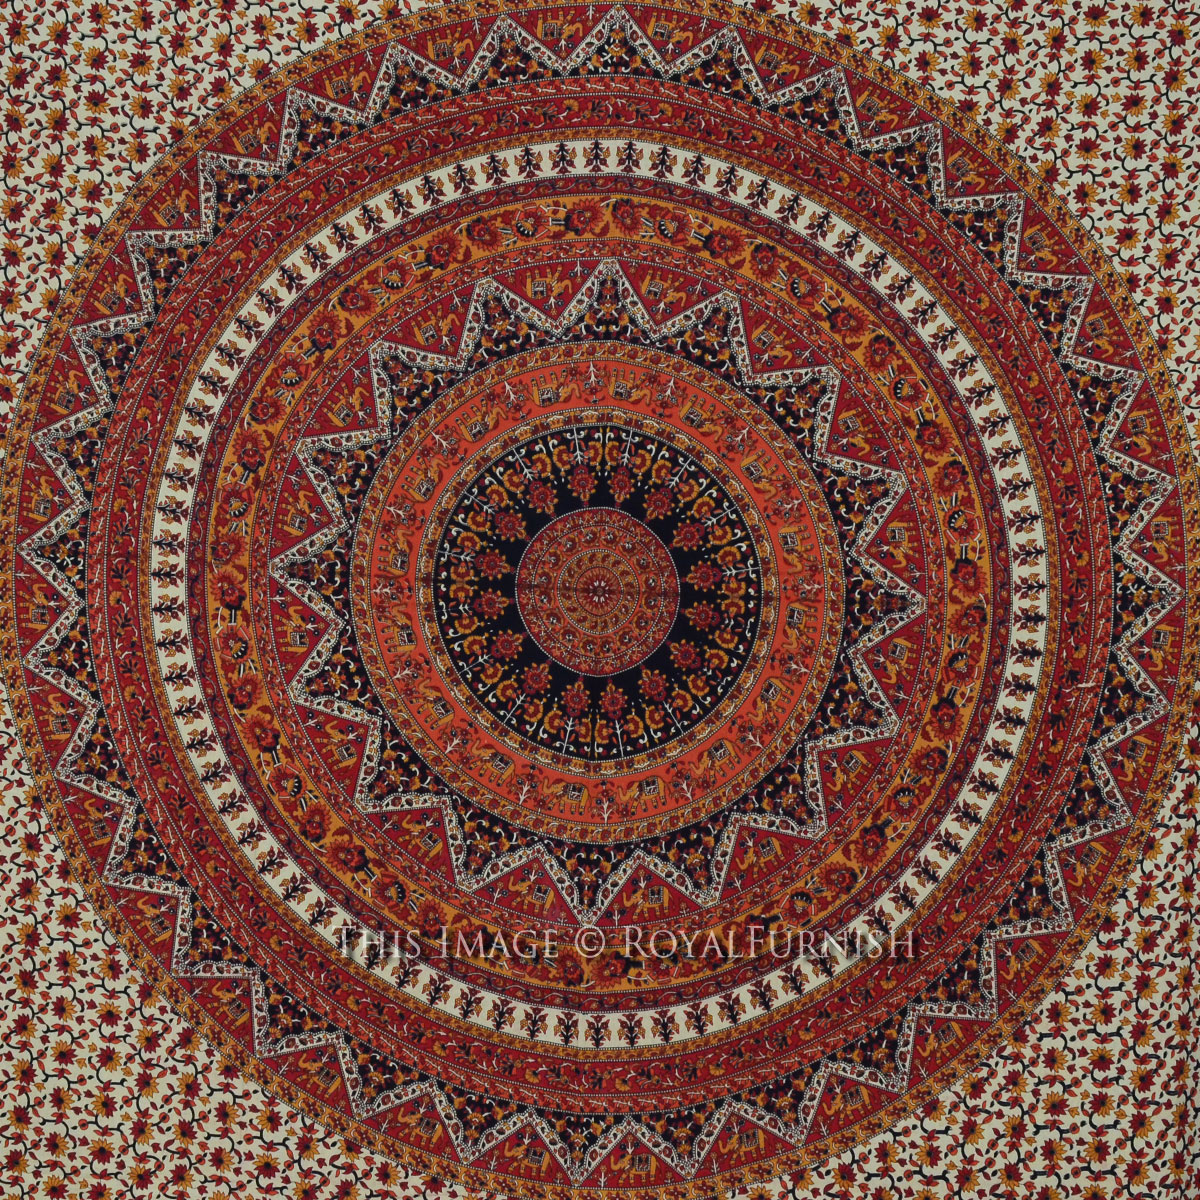 Queen Red Psychedelic Bohemian Hippie Mandala Tapestry Wall Hanging RoyalFurnish